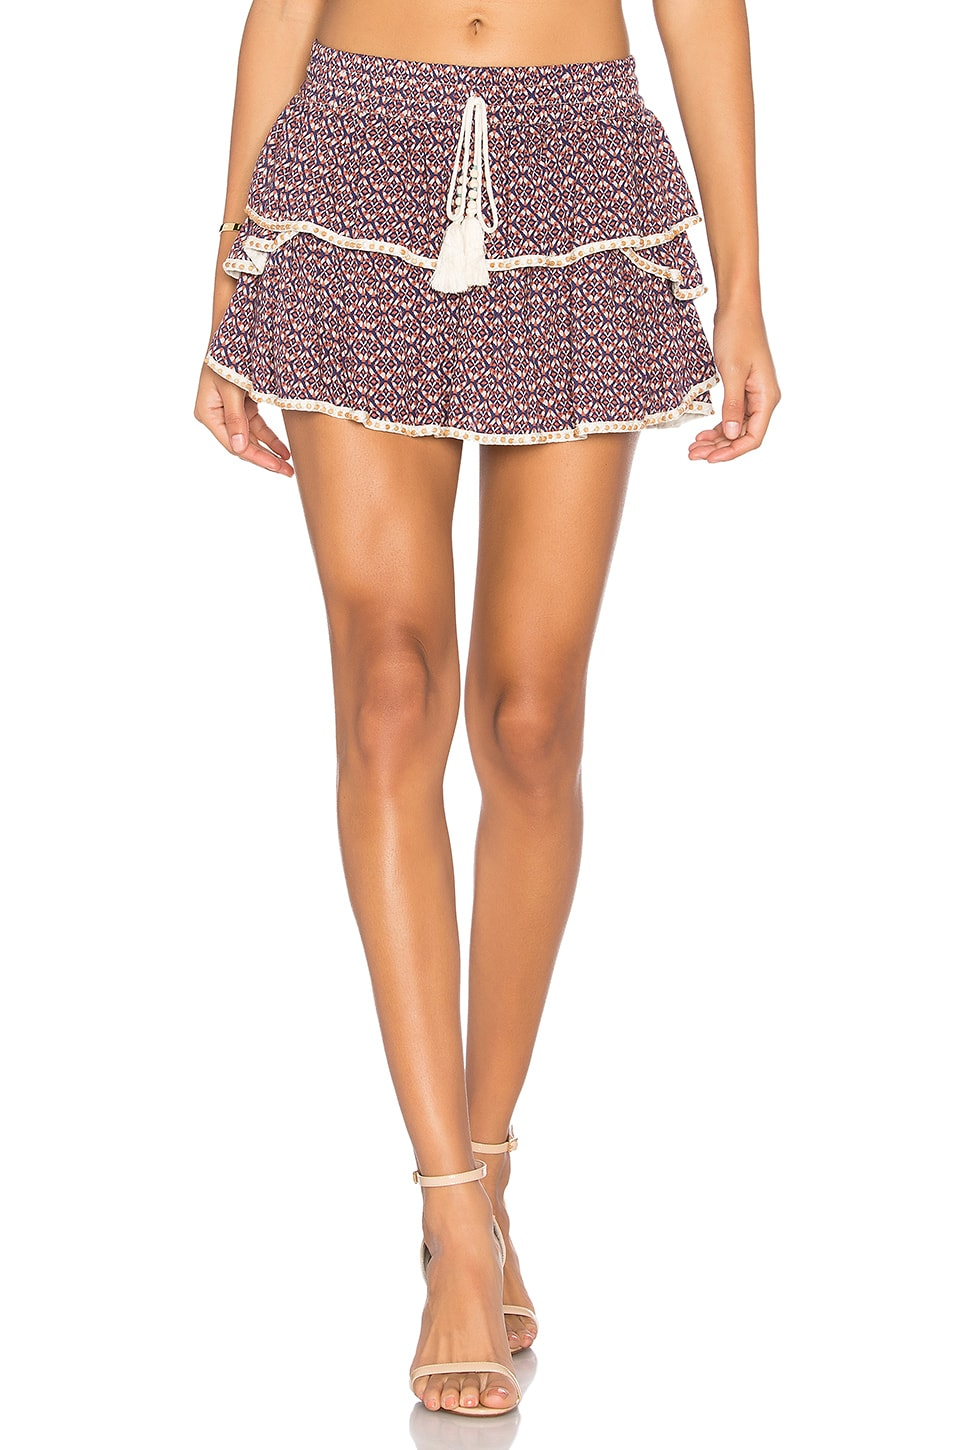 Vienna Short by Flannel Australia